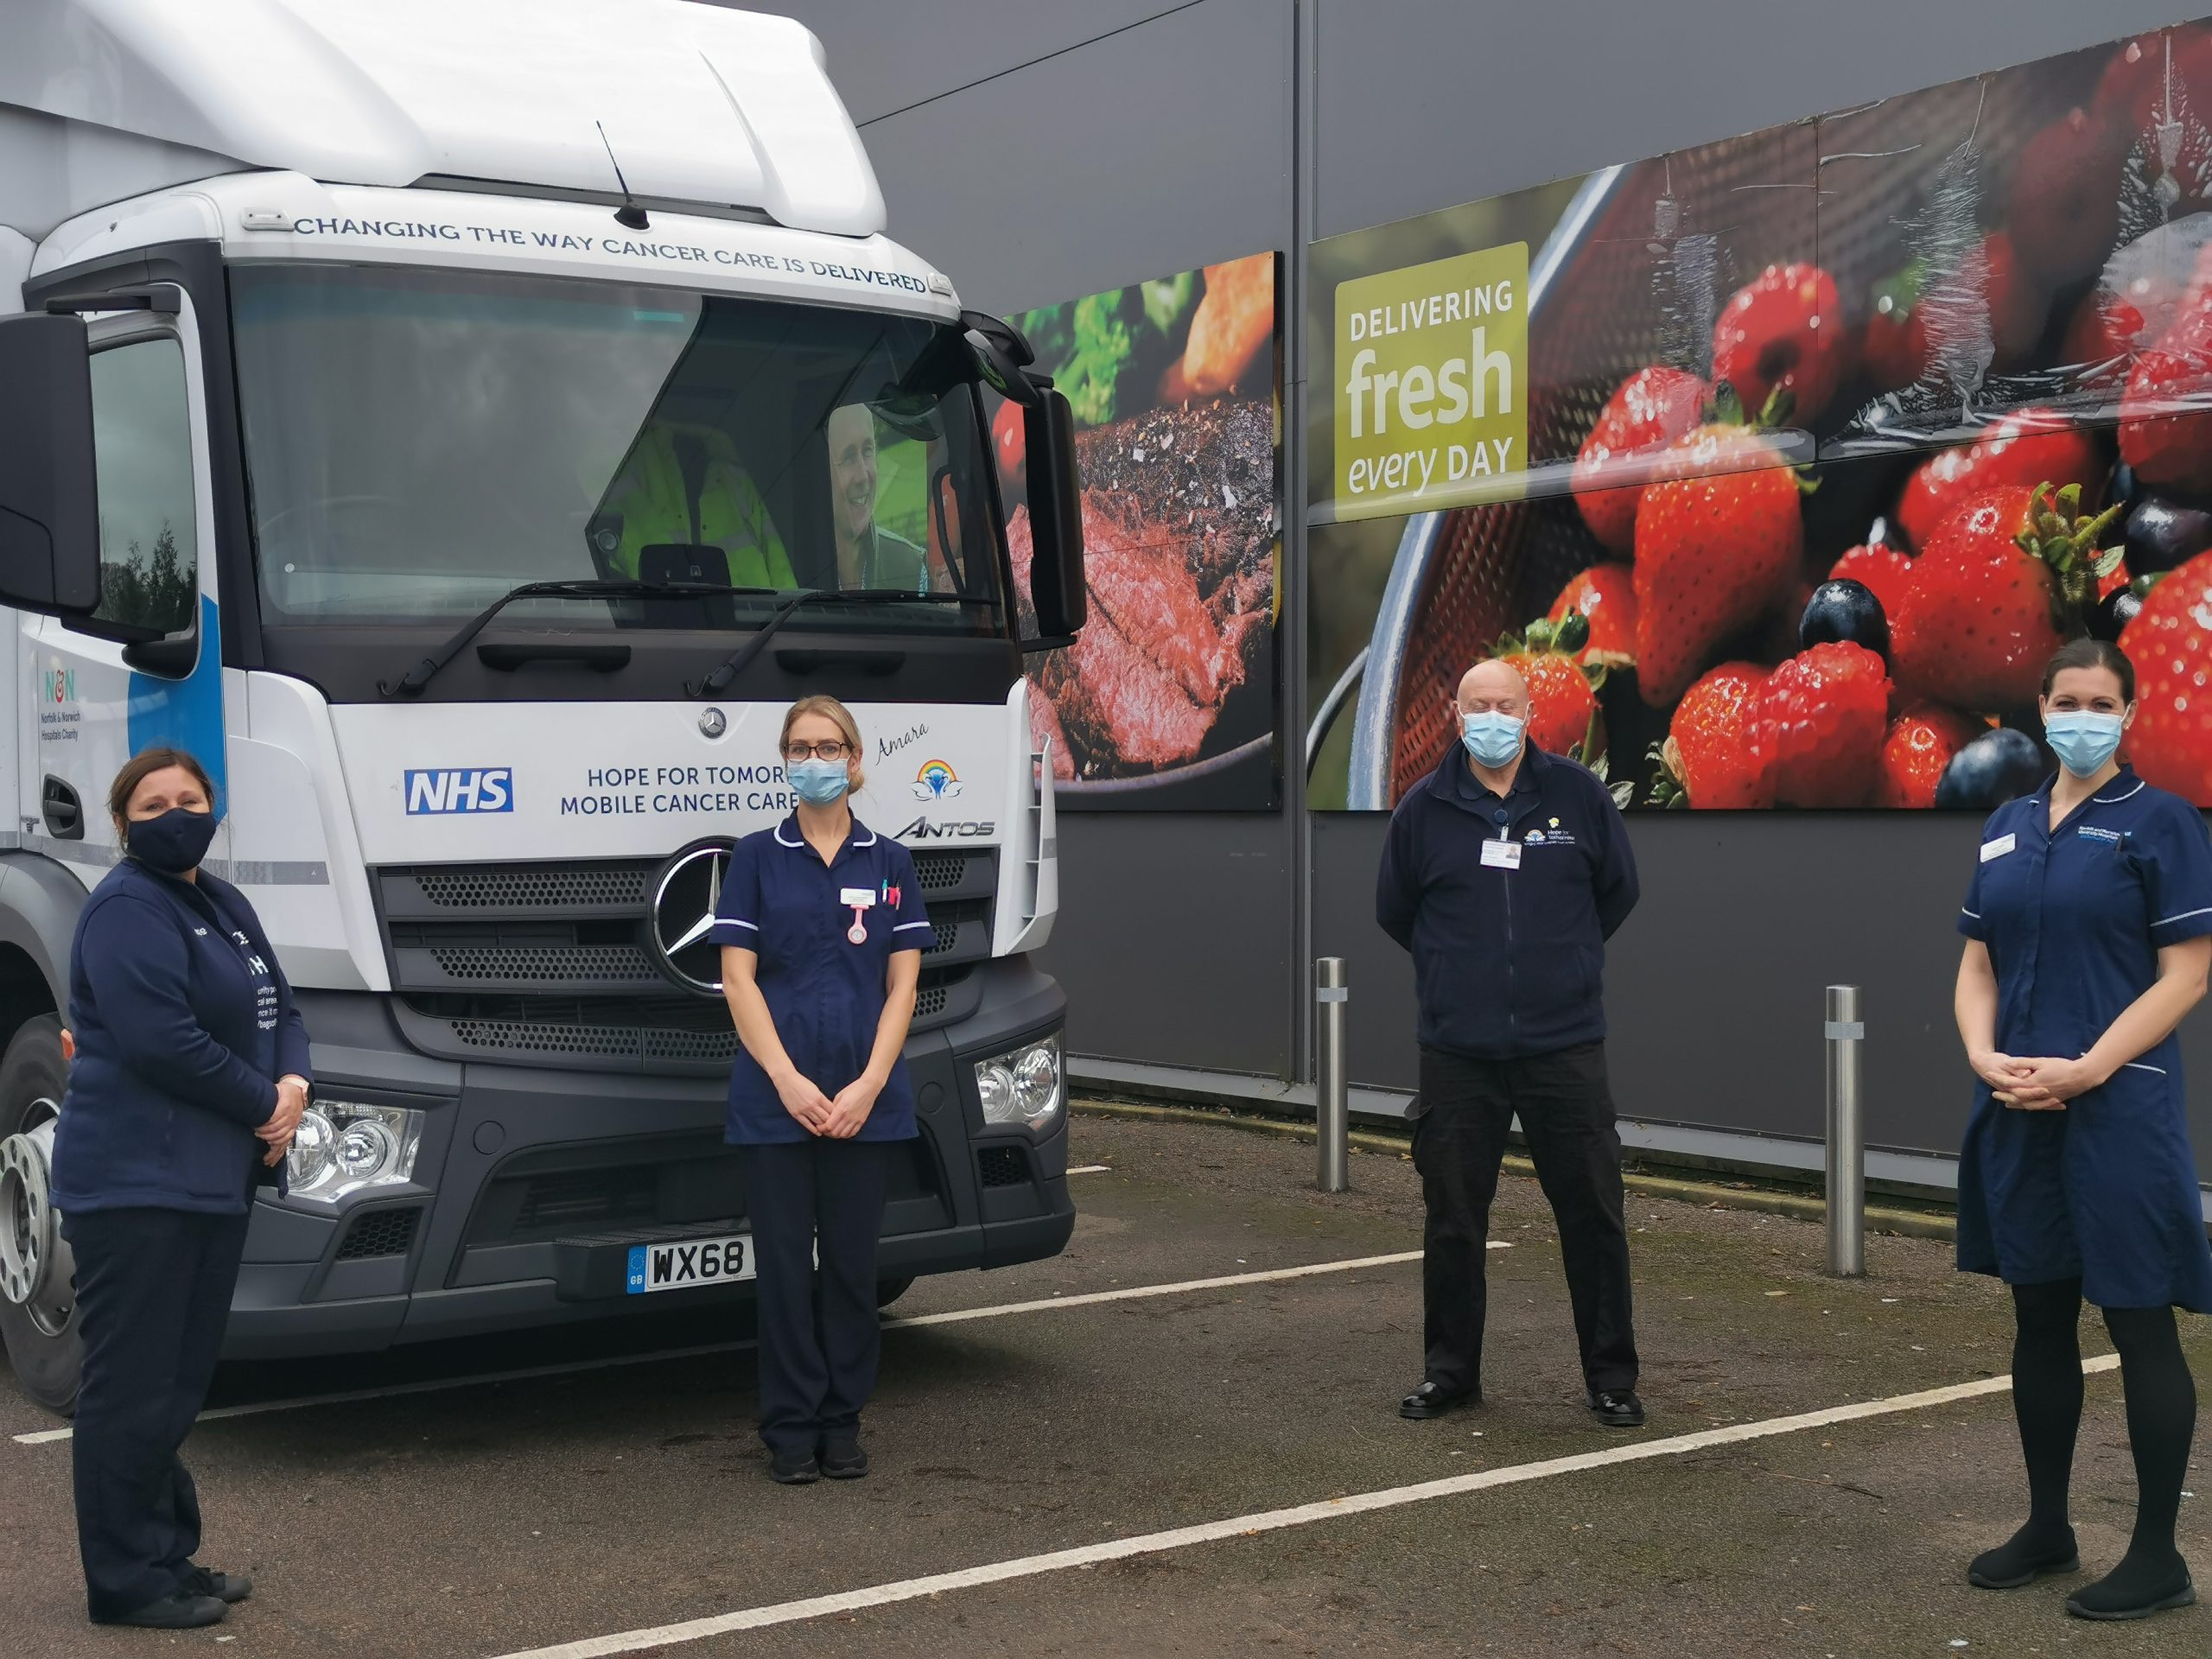 Cancer care hits the road